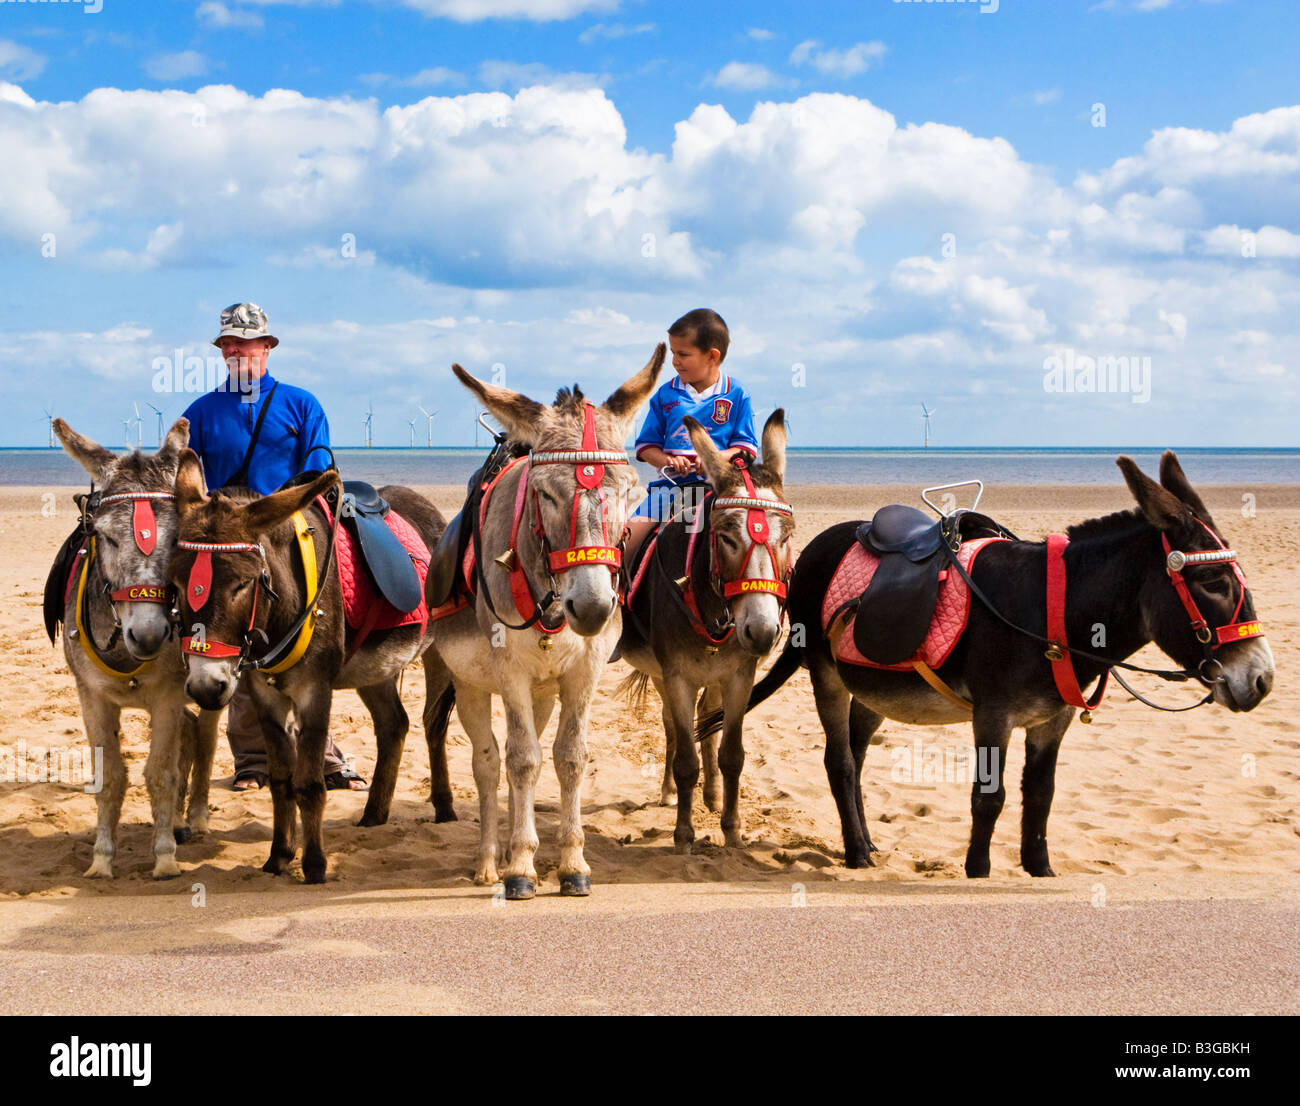 Small boy sitting on a donkey at Skegness Beach, Lincolnshire, England, UK Stock Photo